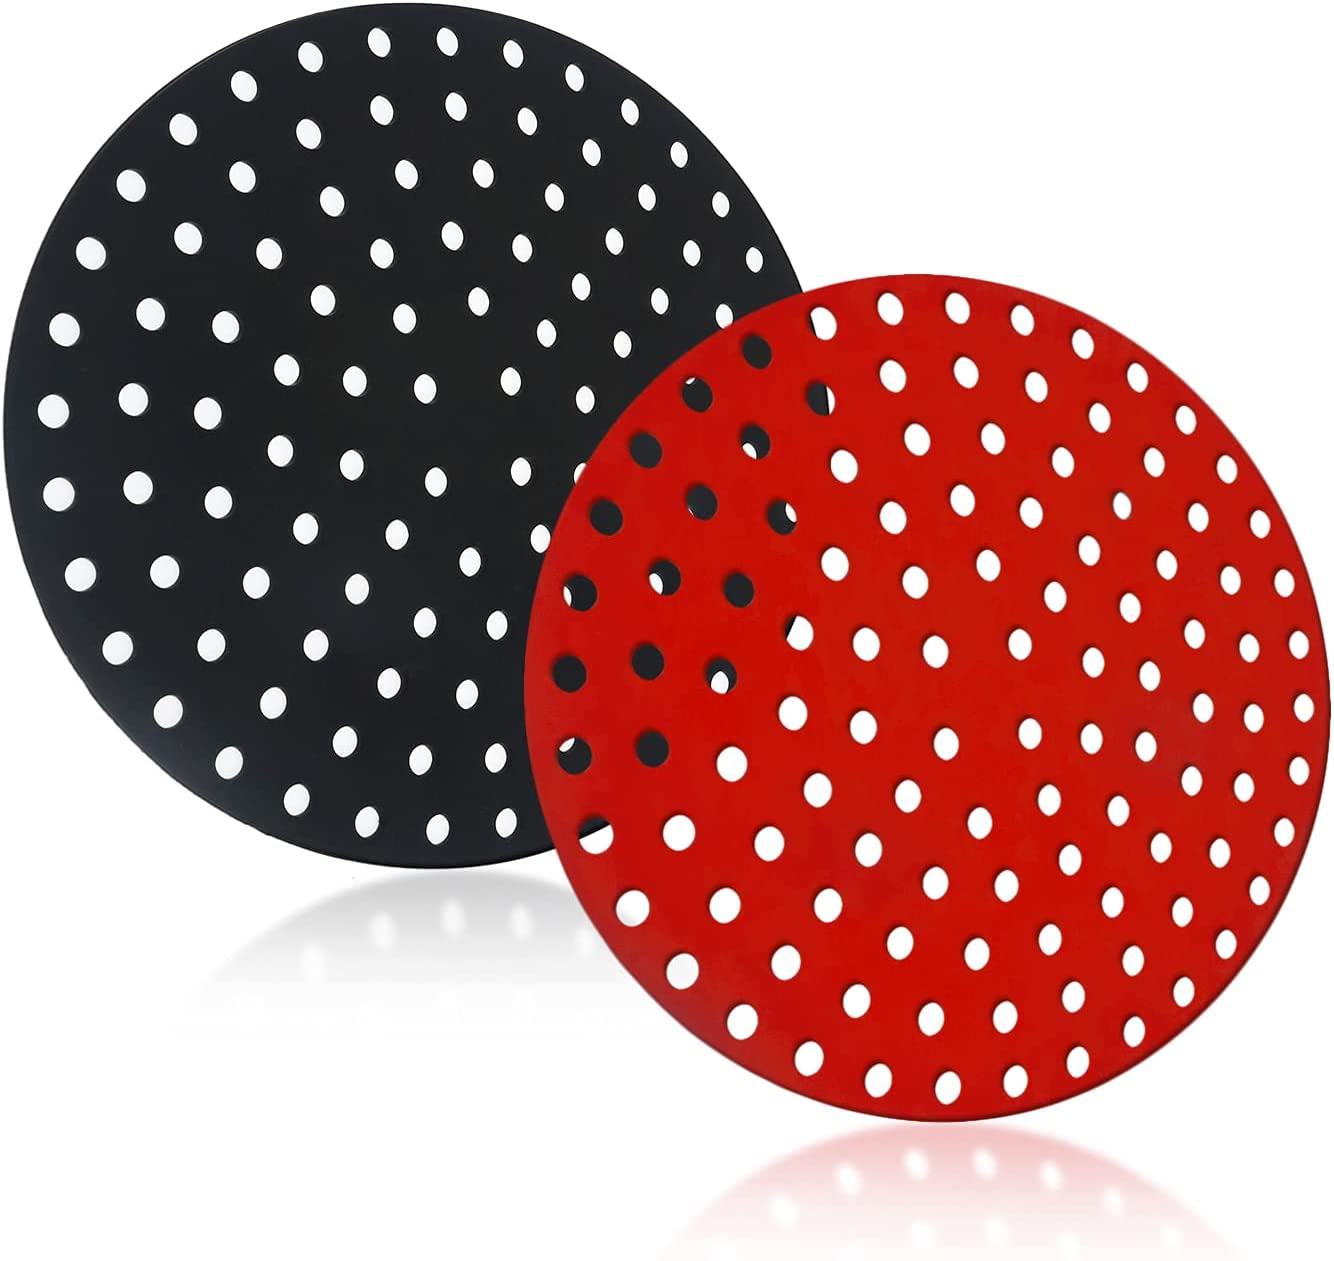 Cresater Silicone Air Fryer Liners, 8 Inch Round, Reusable Non-Stick Air Fryer Basket Mats, Air Fryer Accessories, BPA Free, 2-Pack